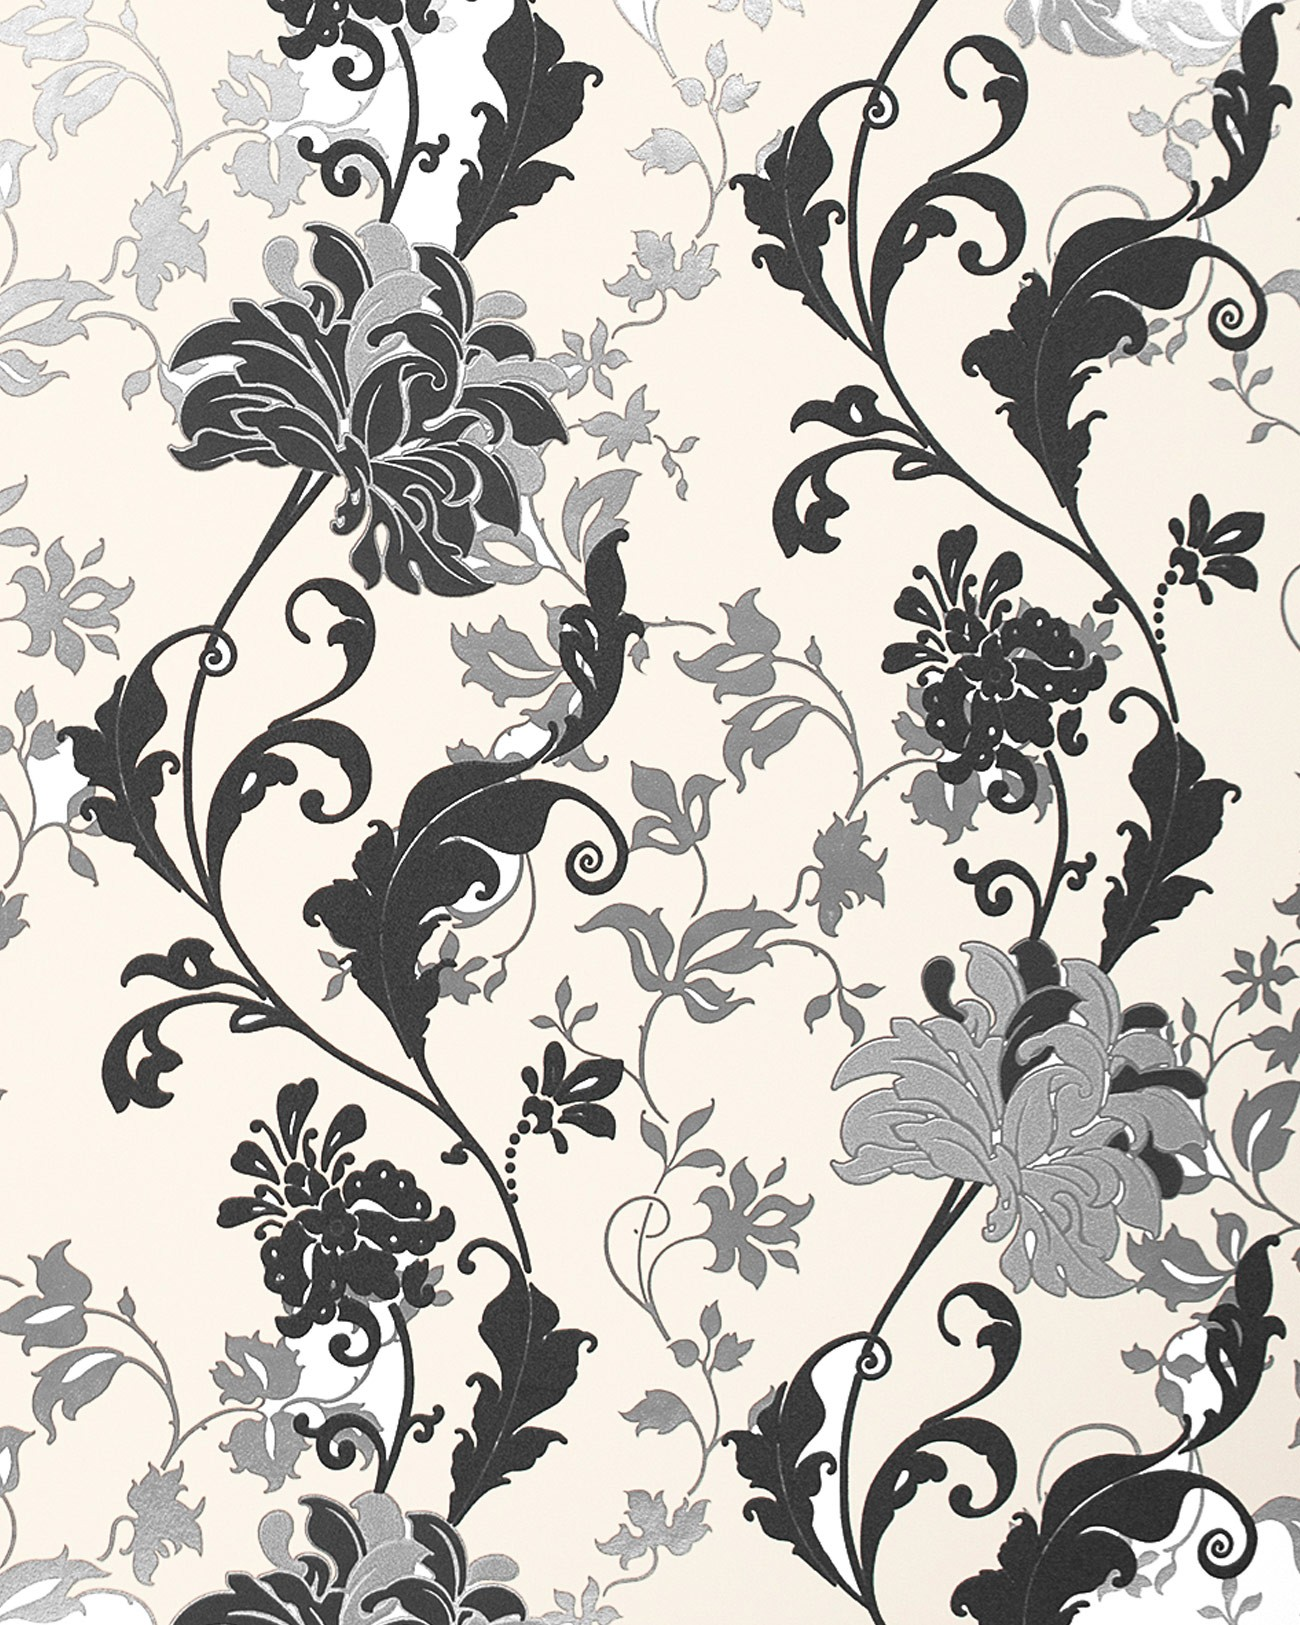 Flowers Wall Covering Luxury Design Edem 833 20 Floral Wallpaper